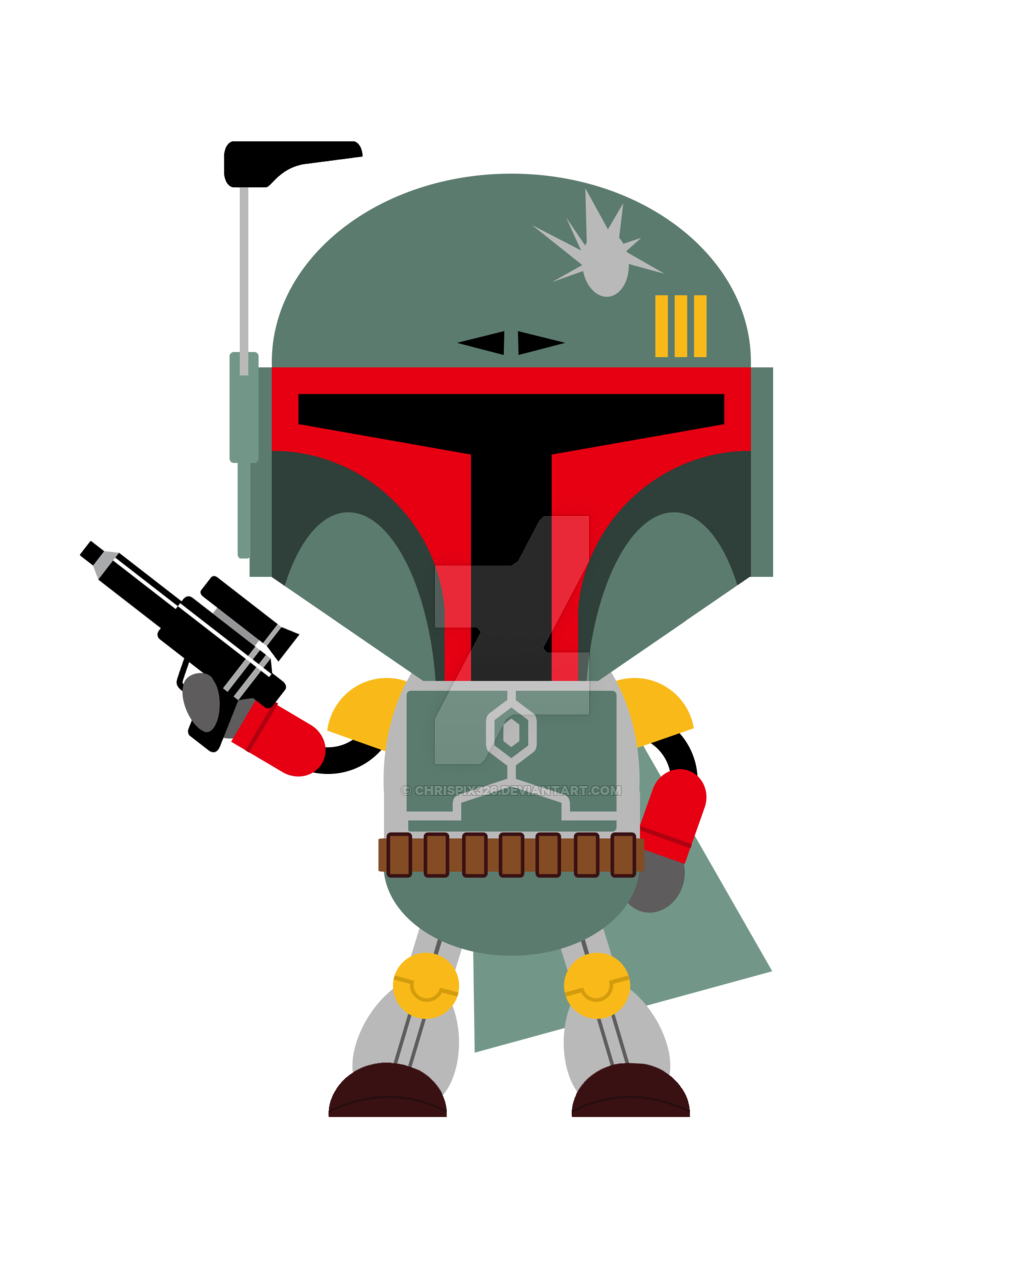 Star wars clipart boba fett jpg royalty free A lot of free downloadable Star Wars clip art | Star Wars Baby ... jpg royalty free